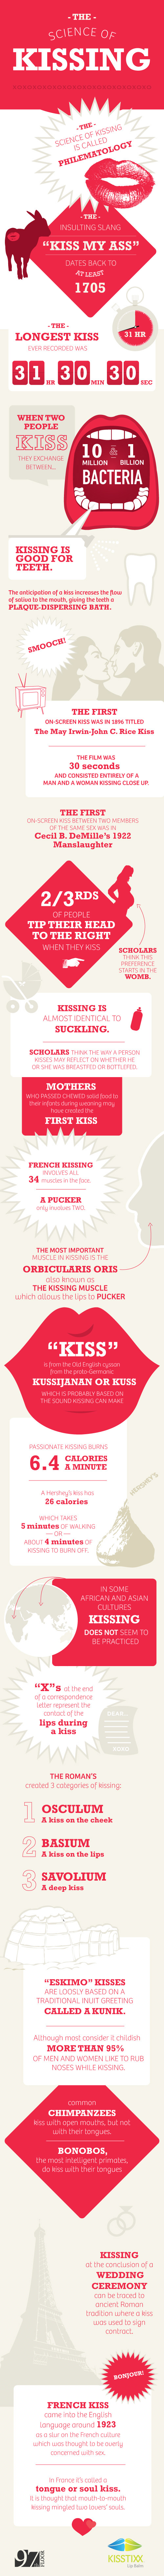 the-science-of-kissing